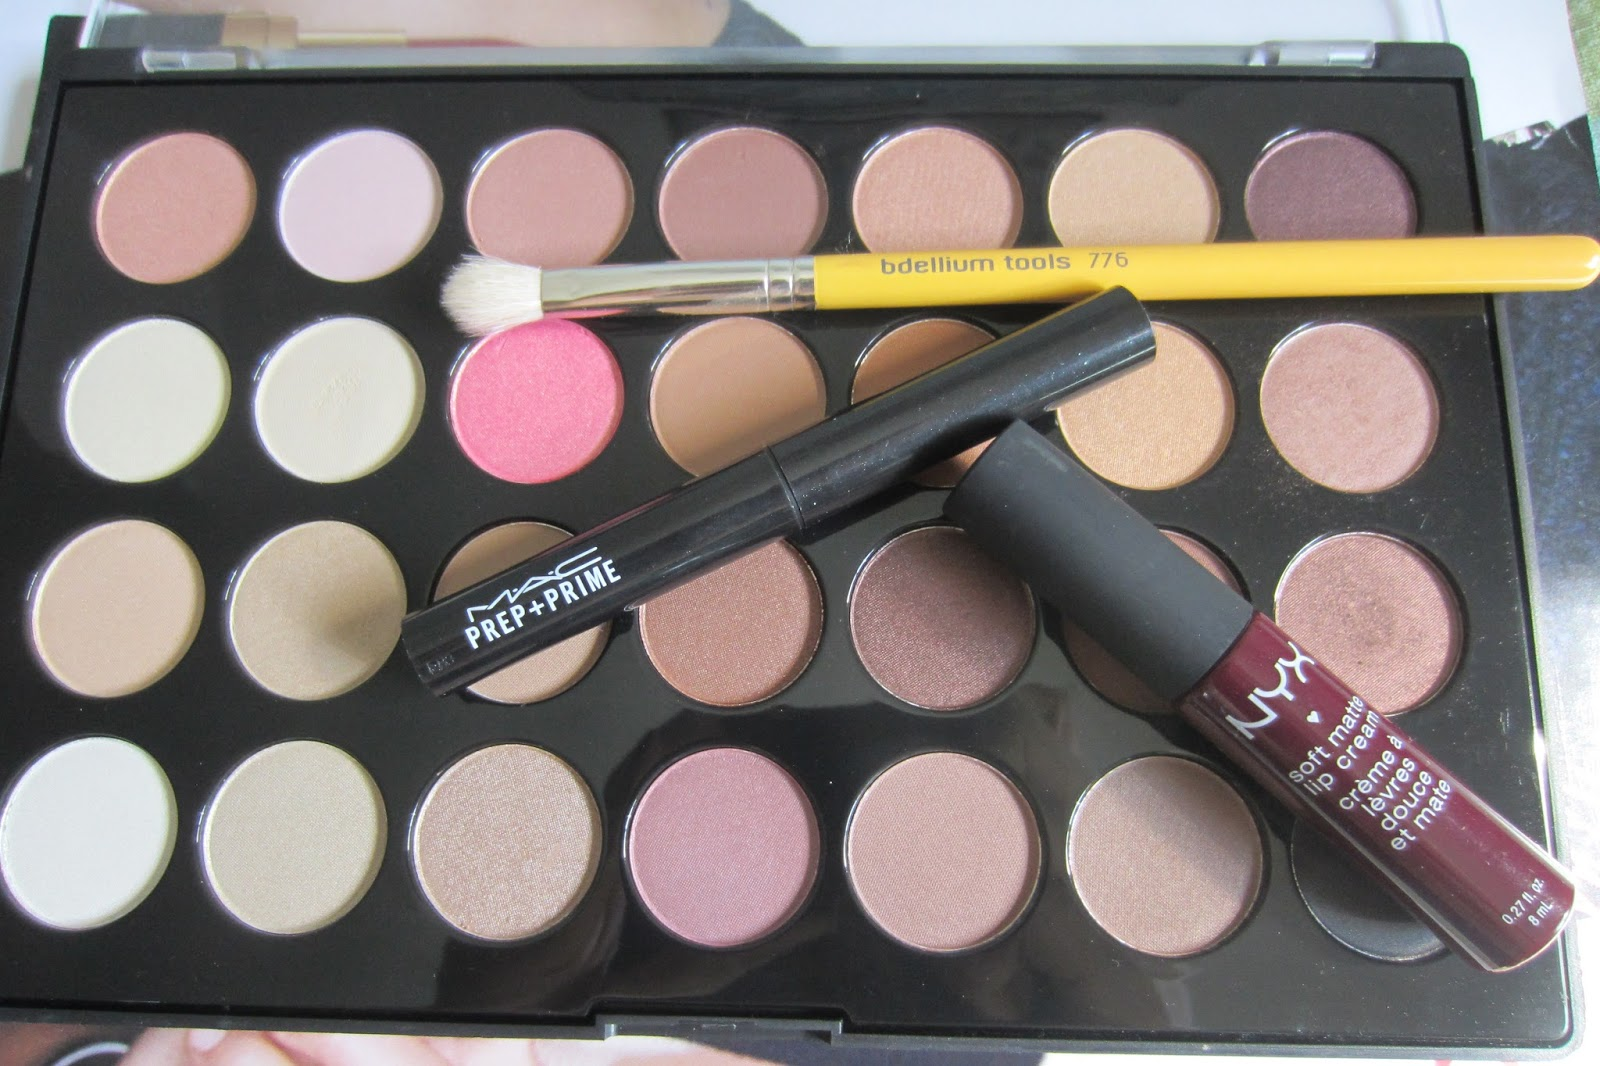 BH cosmetics 28 neutral palette bdellium 776 brush mac prep + prime lip nyx soft matte lip cream copenhagen